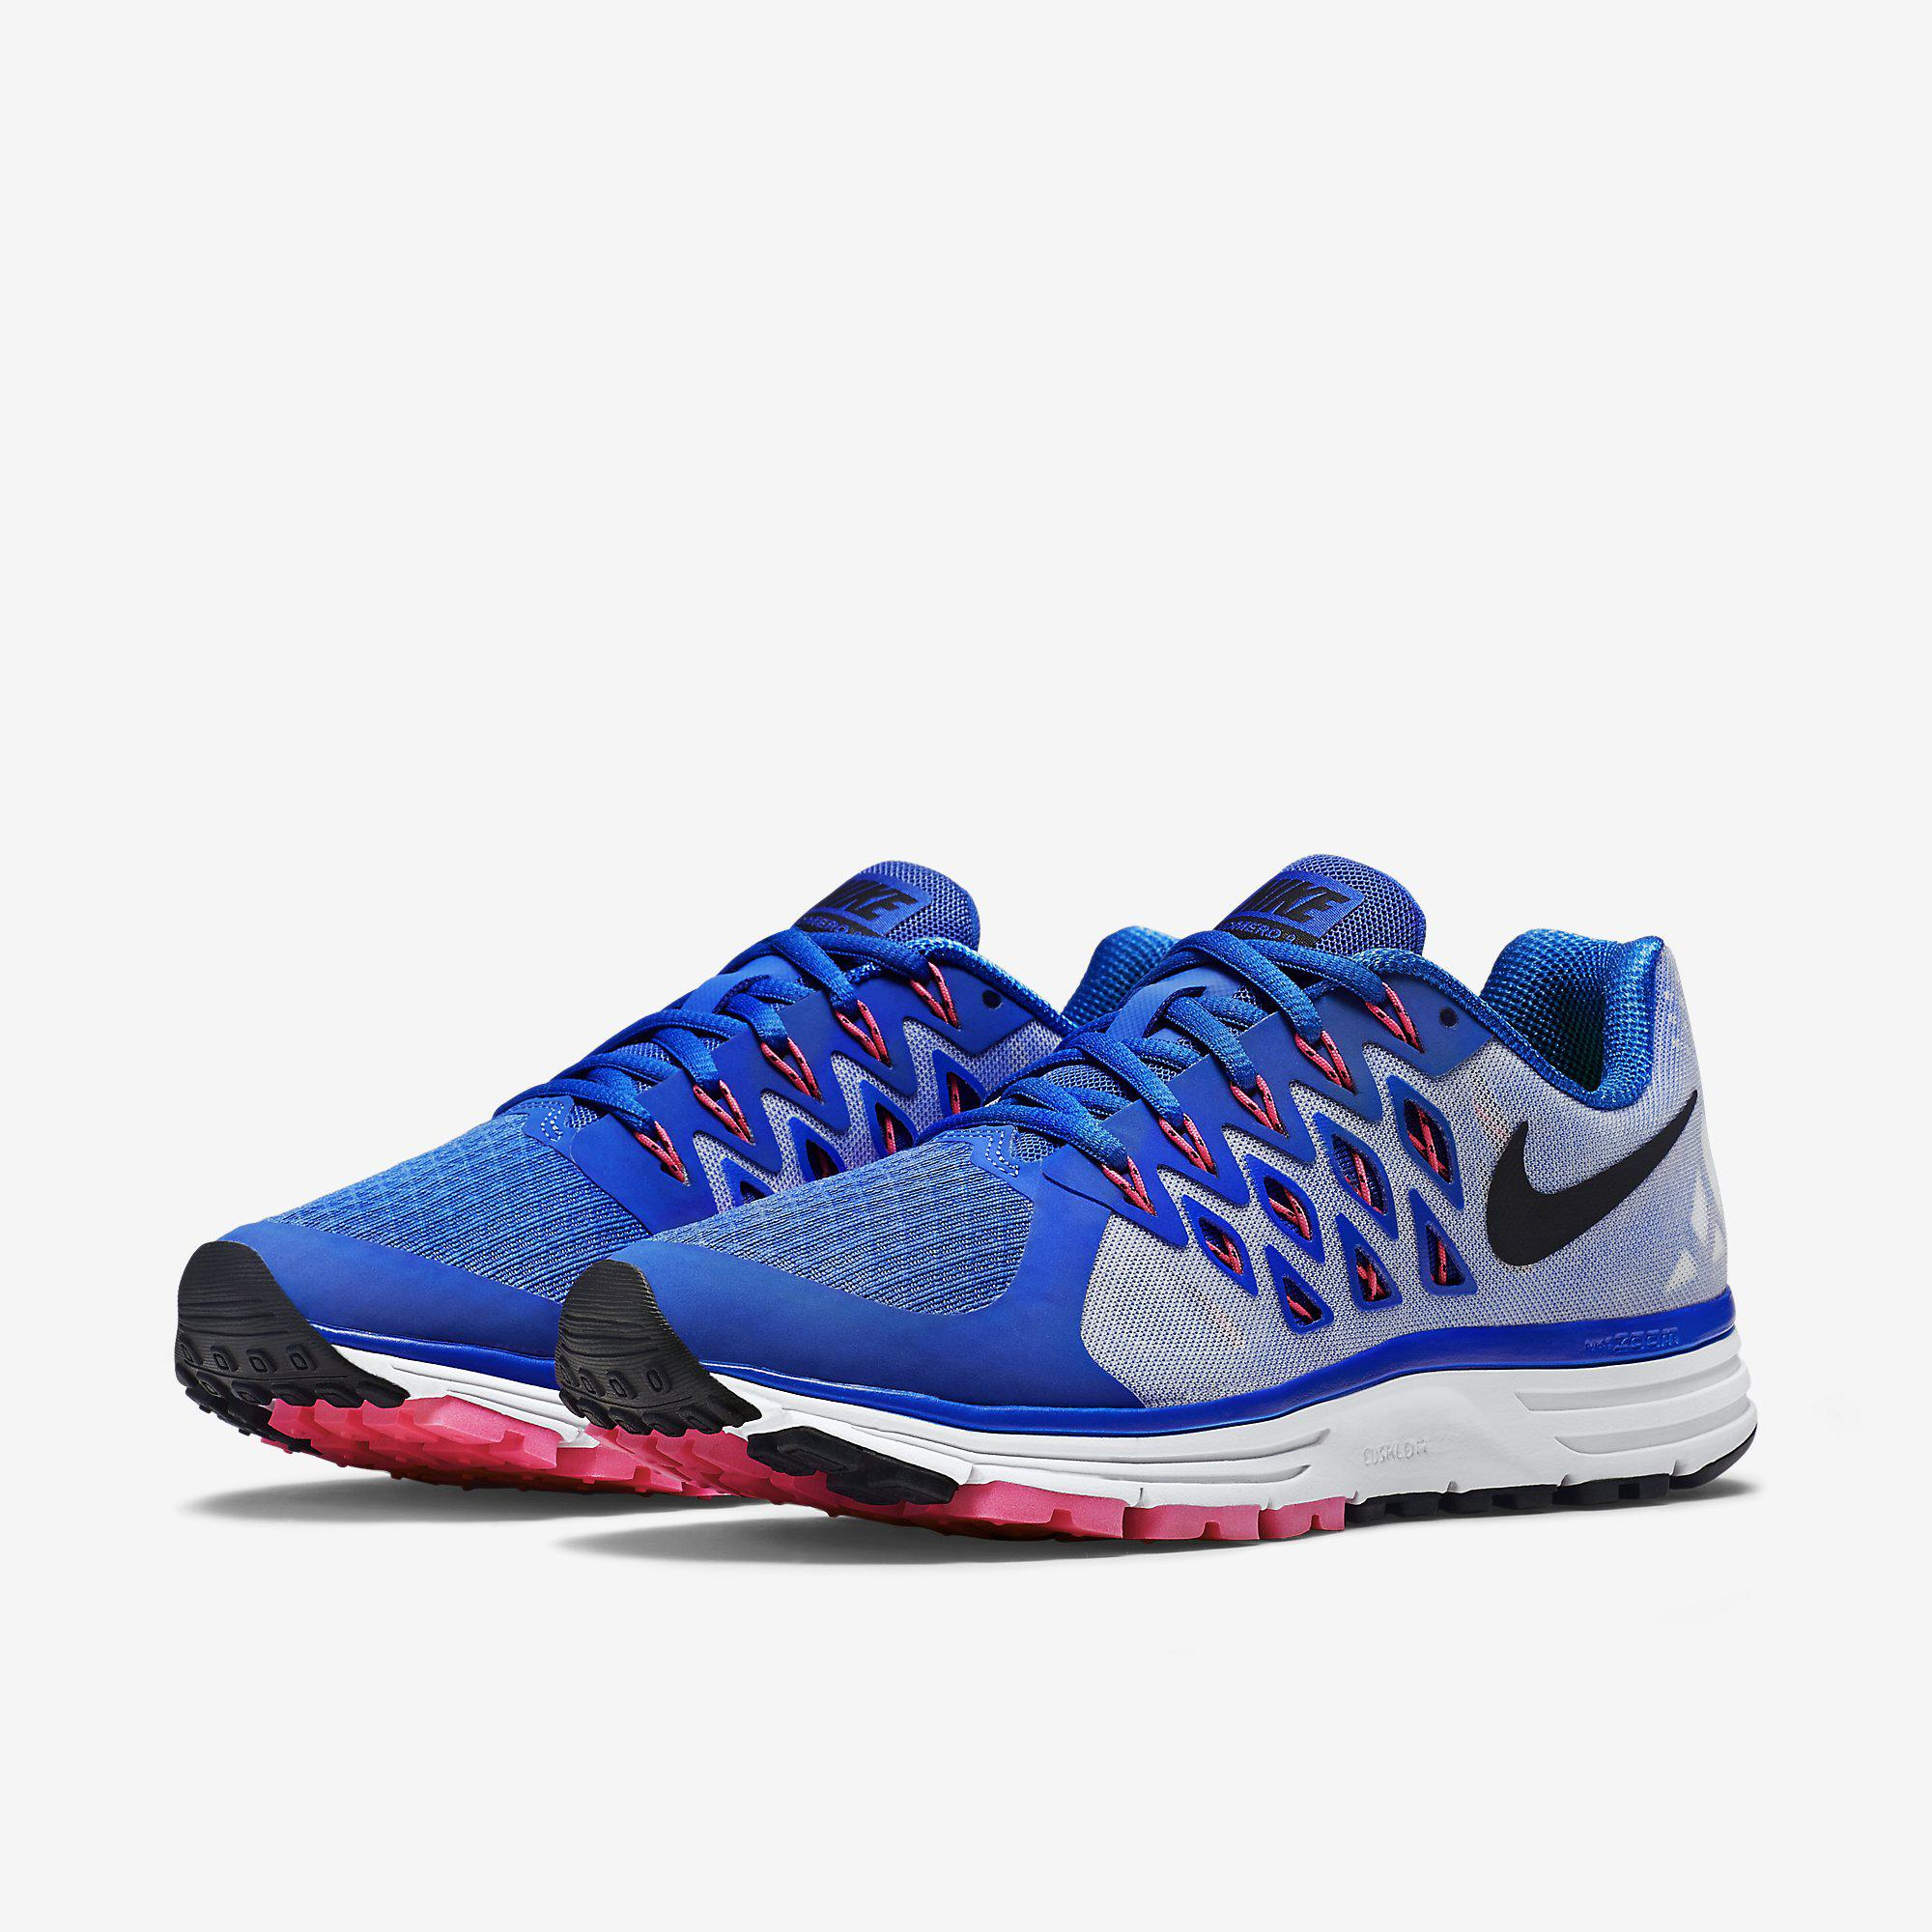 nike zoom vomero purple sky blue